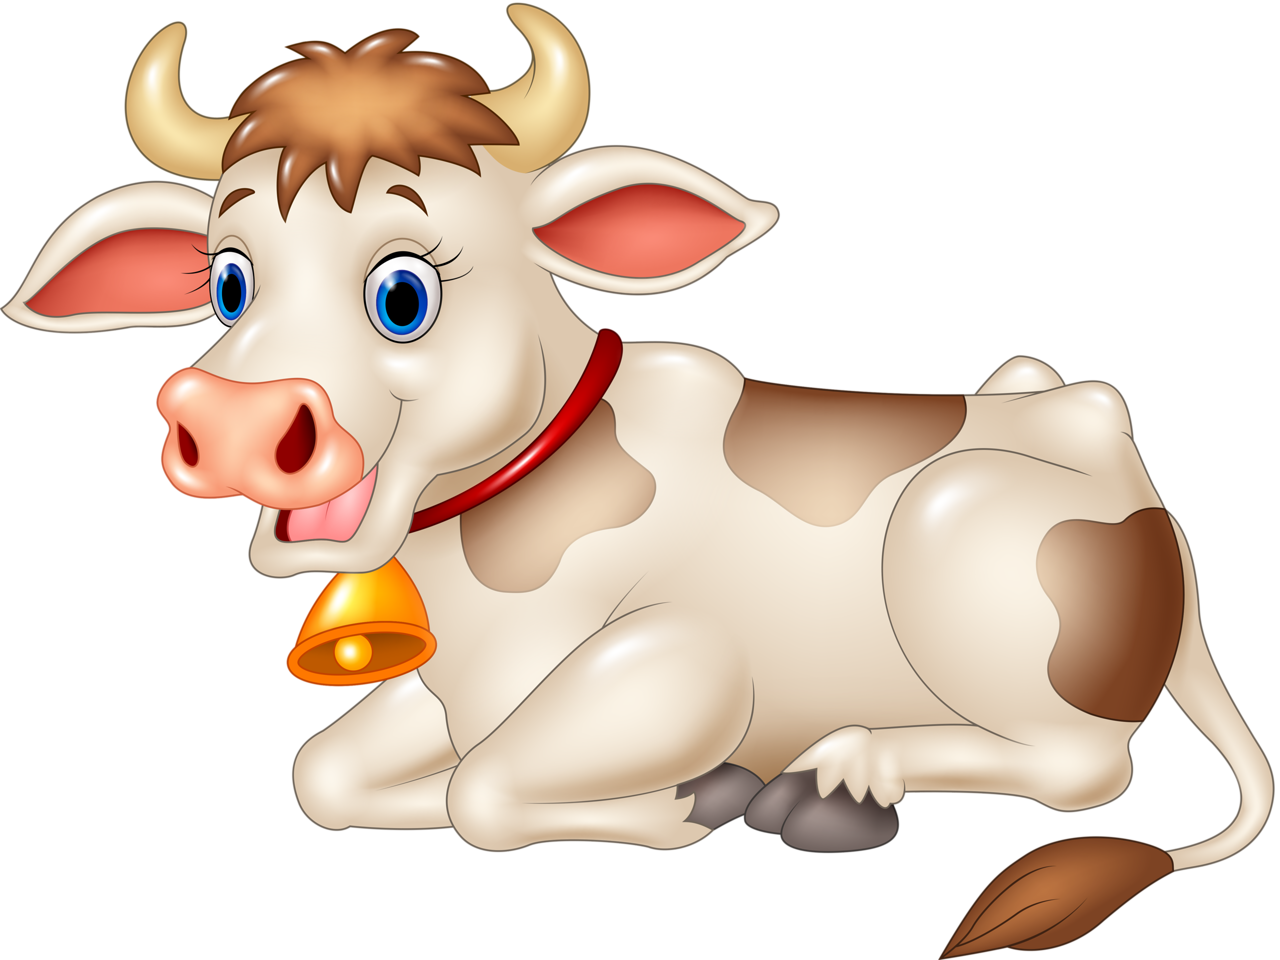 Christmas cow clipart image library download Funny cartoon animals vector (15) [преобразованный].png | Pinterest ... image library download